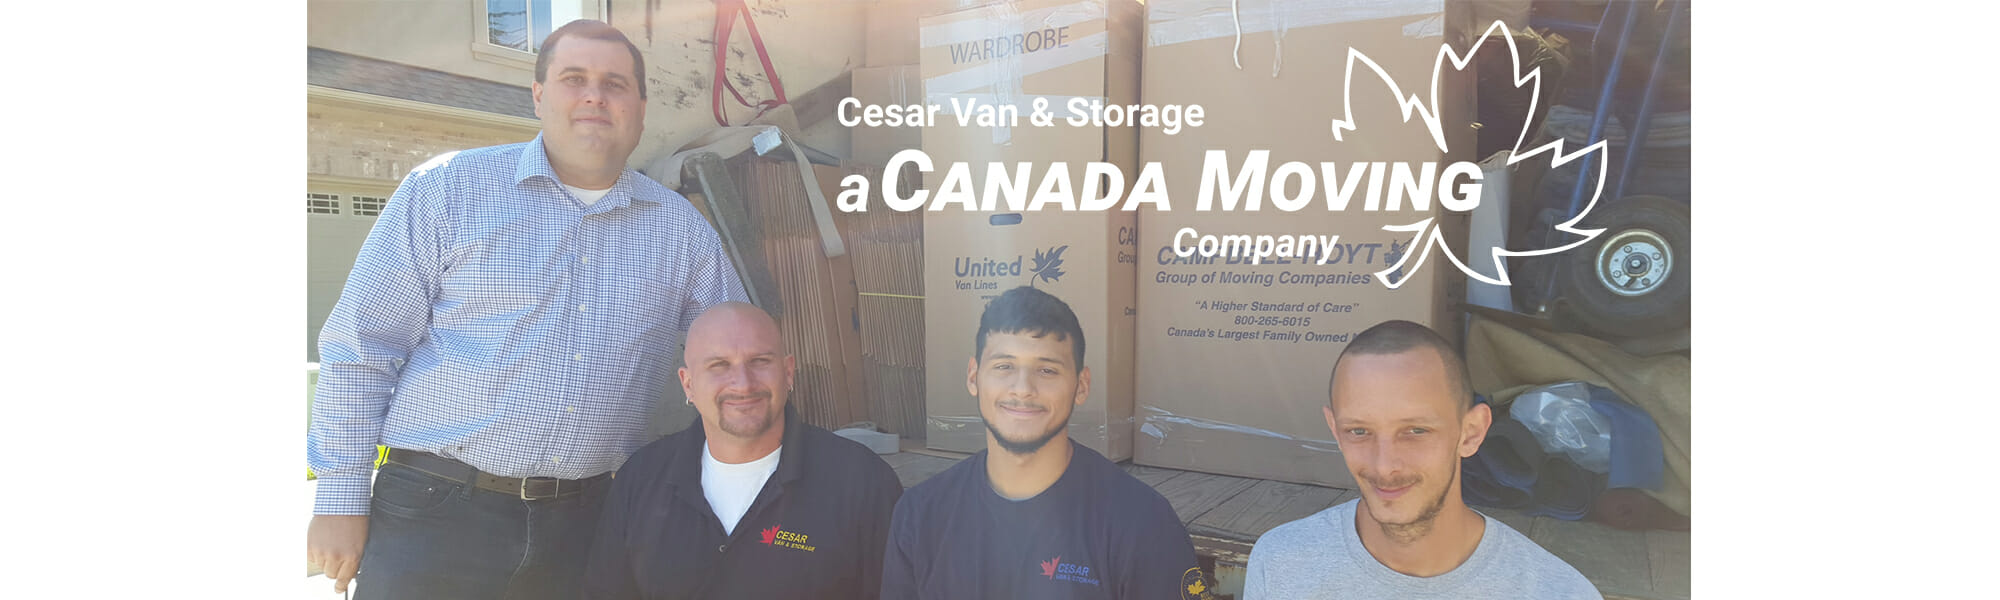 Brantford-Moving-Crew-Cesar-Van-Canada-Moving